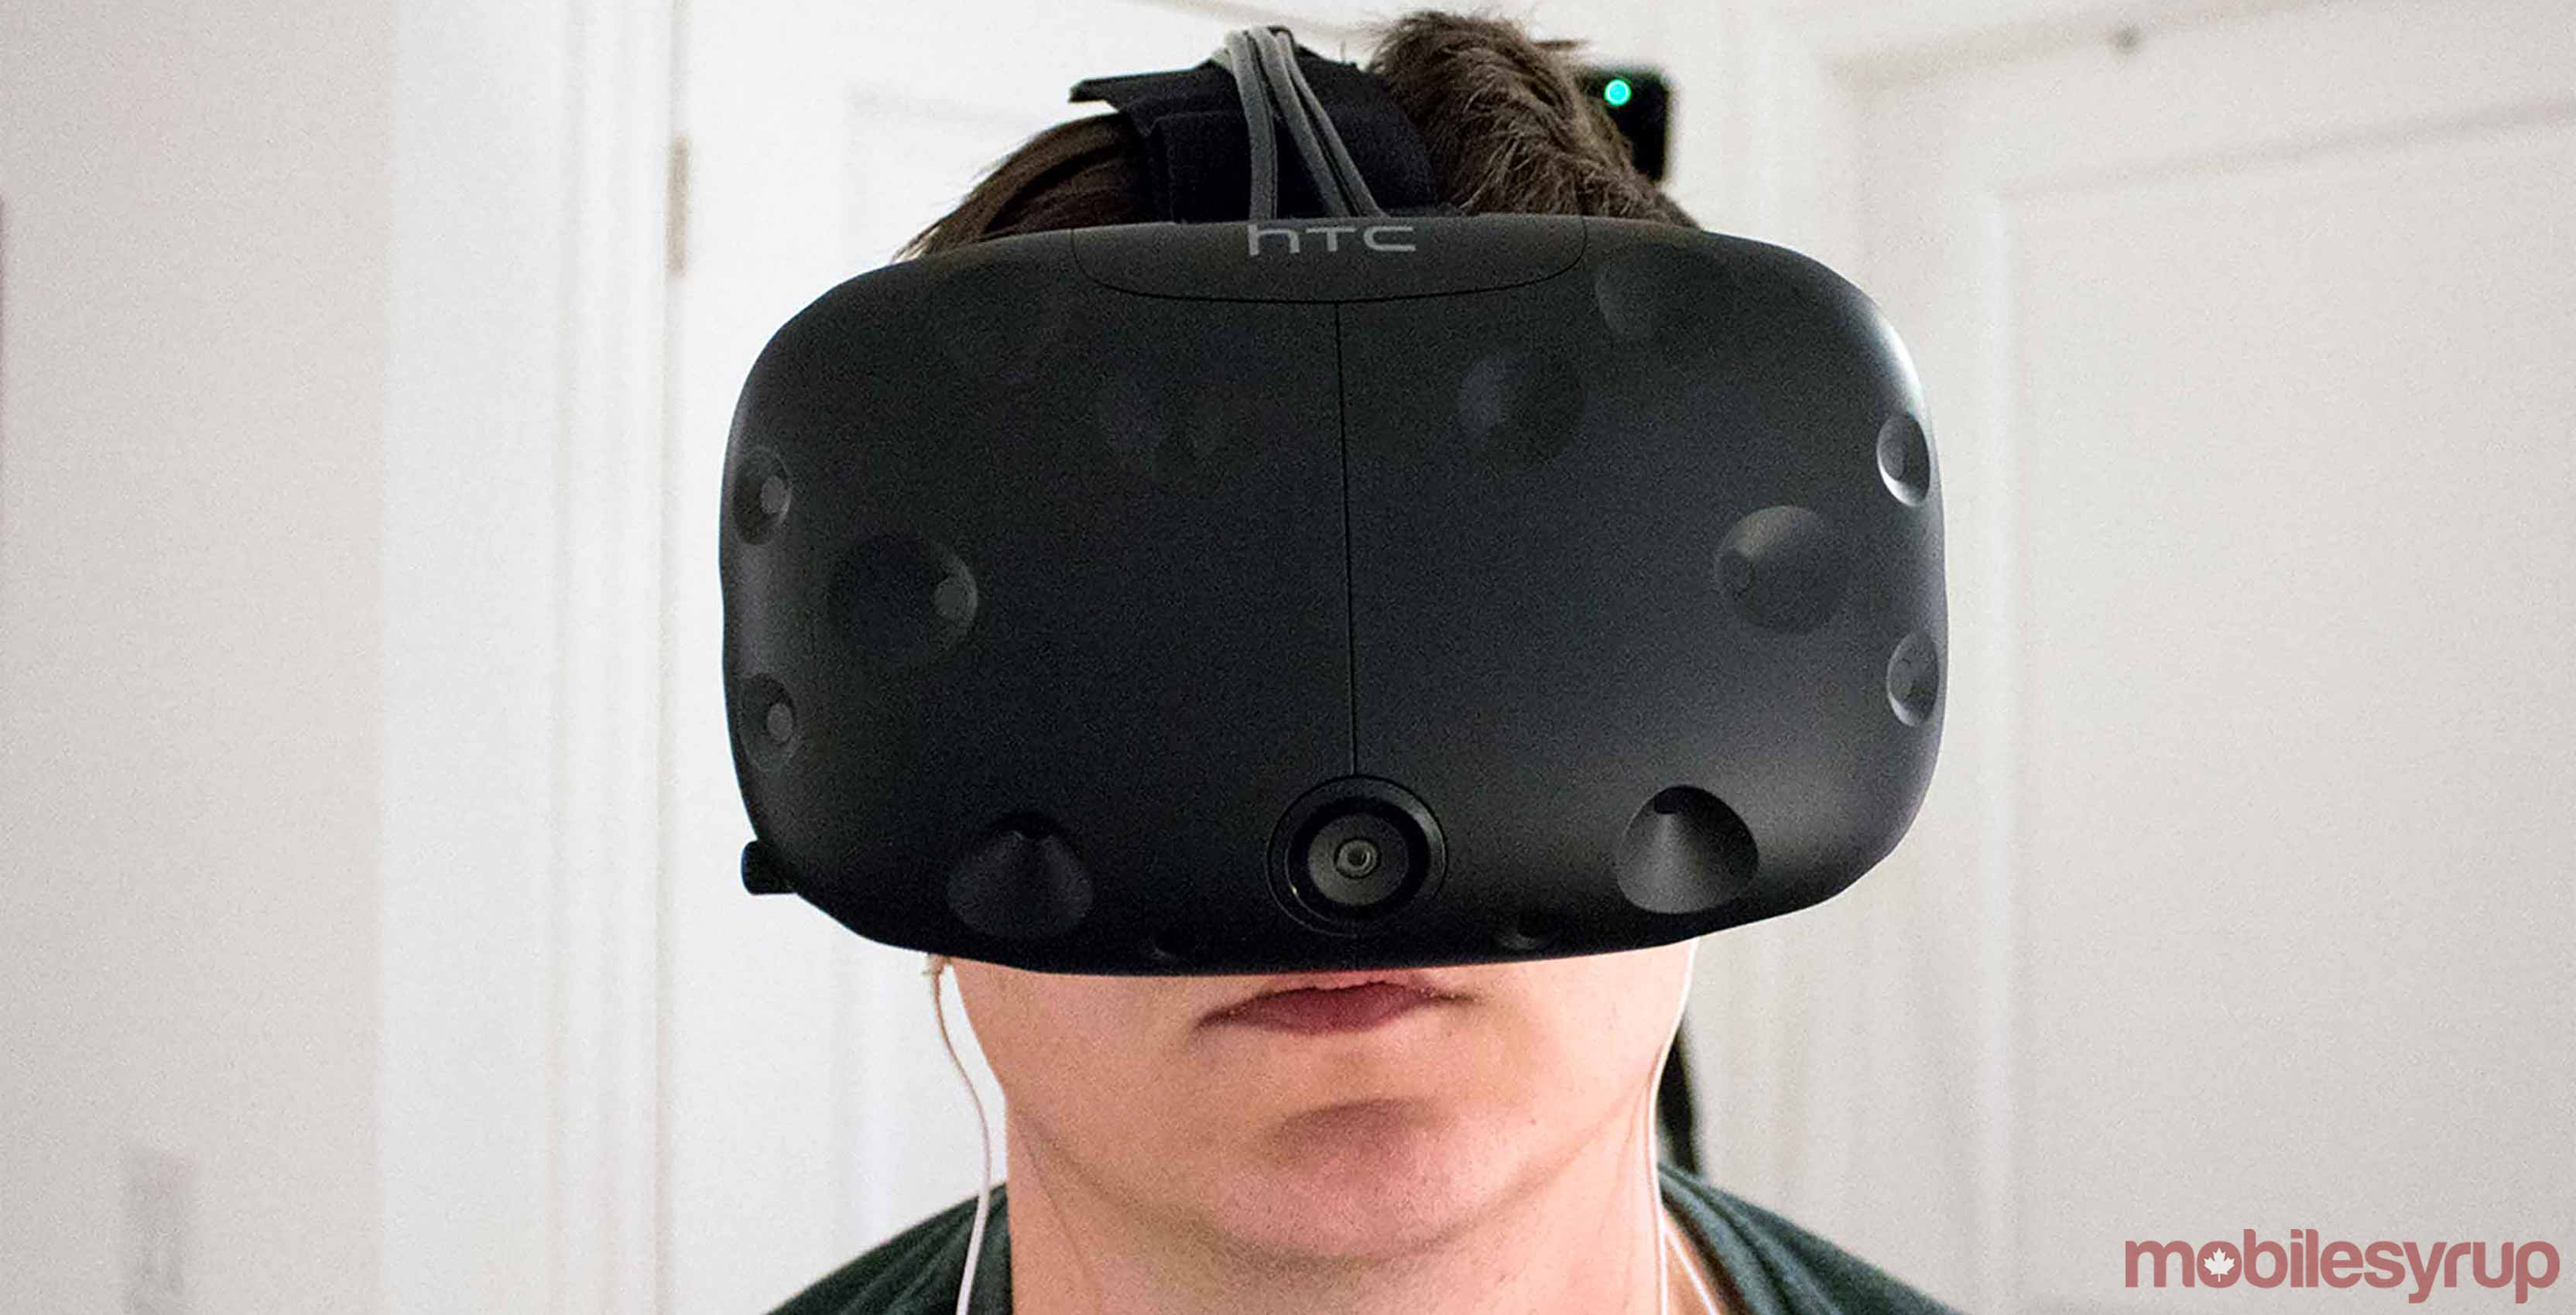 Guy wearing the HTC Vive VR